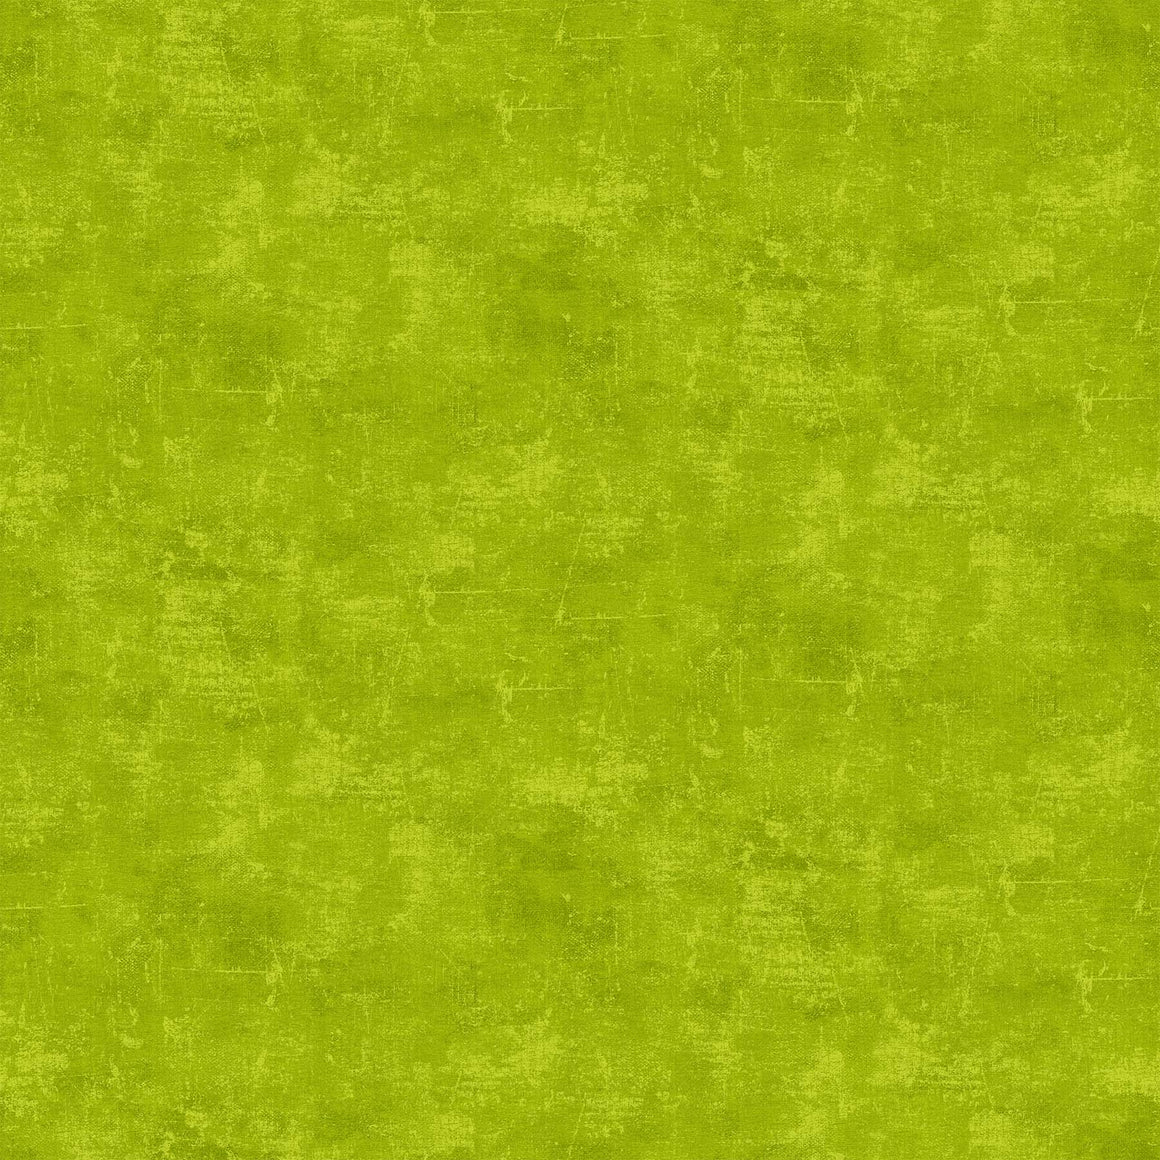 Bright Green- Canvas Texture - 9030-72, Designer Fabric, Northcott, [variant_title] - Mad About Patchwork